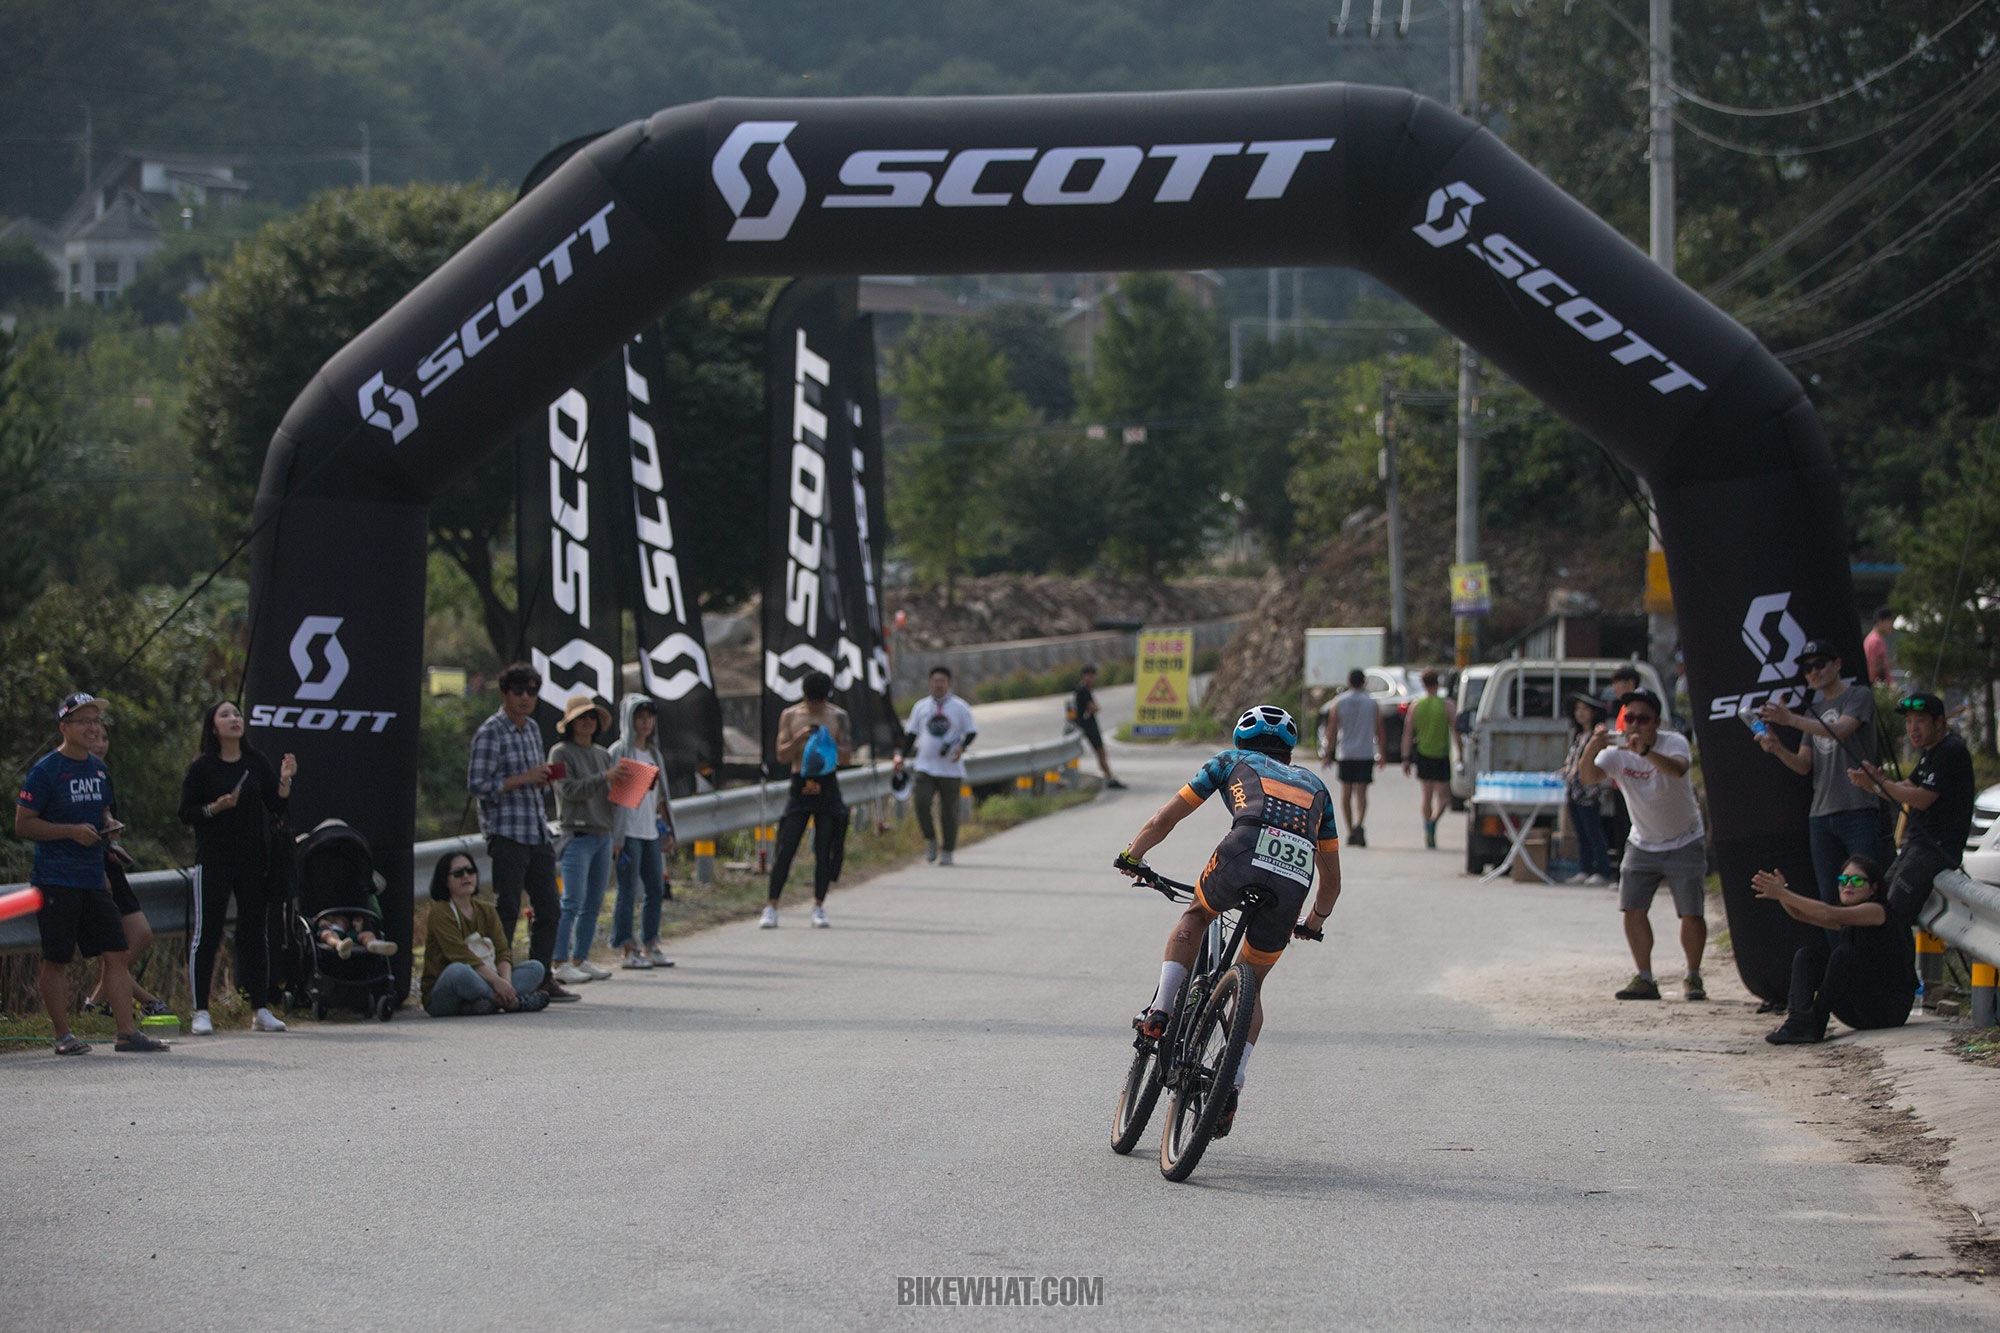 event_2019_SCOTT_XTERRA_10.jpg